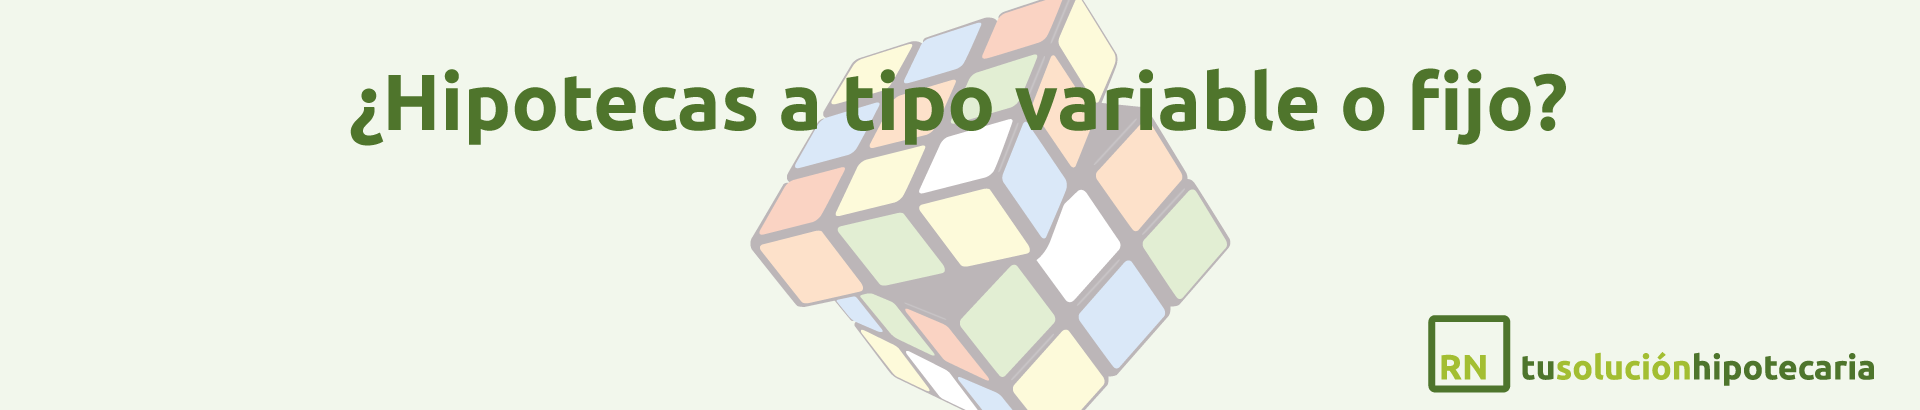 ¿Hipotecas a tipo variable o fijo?